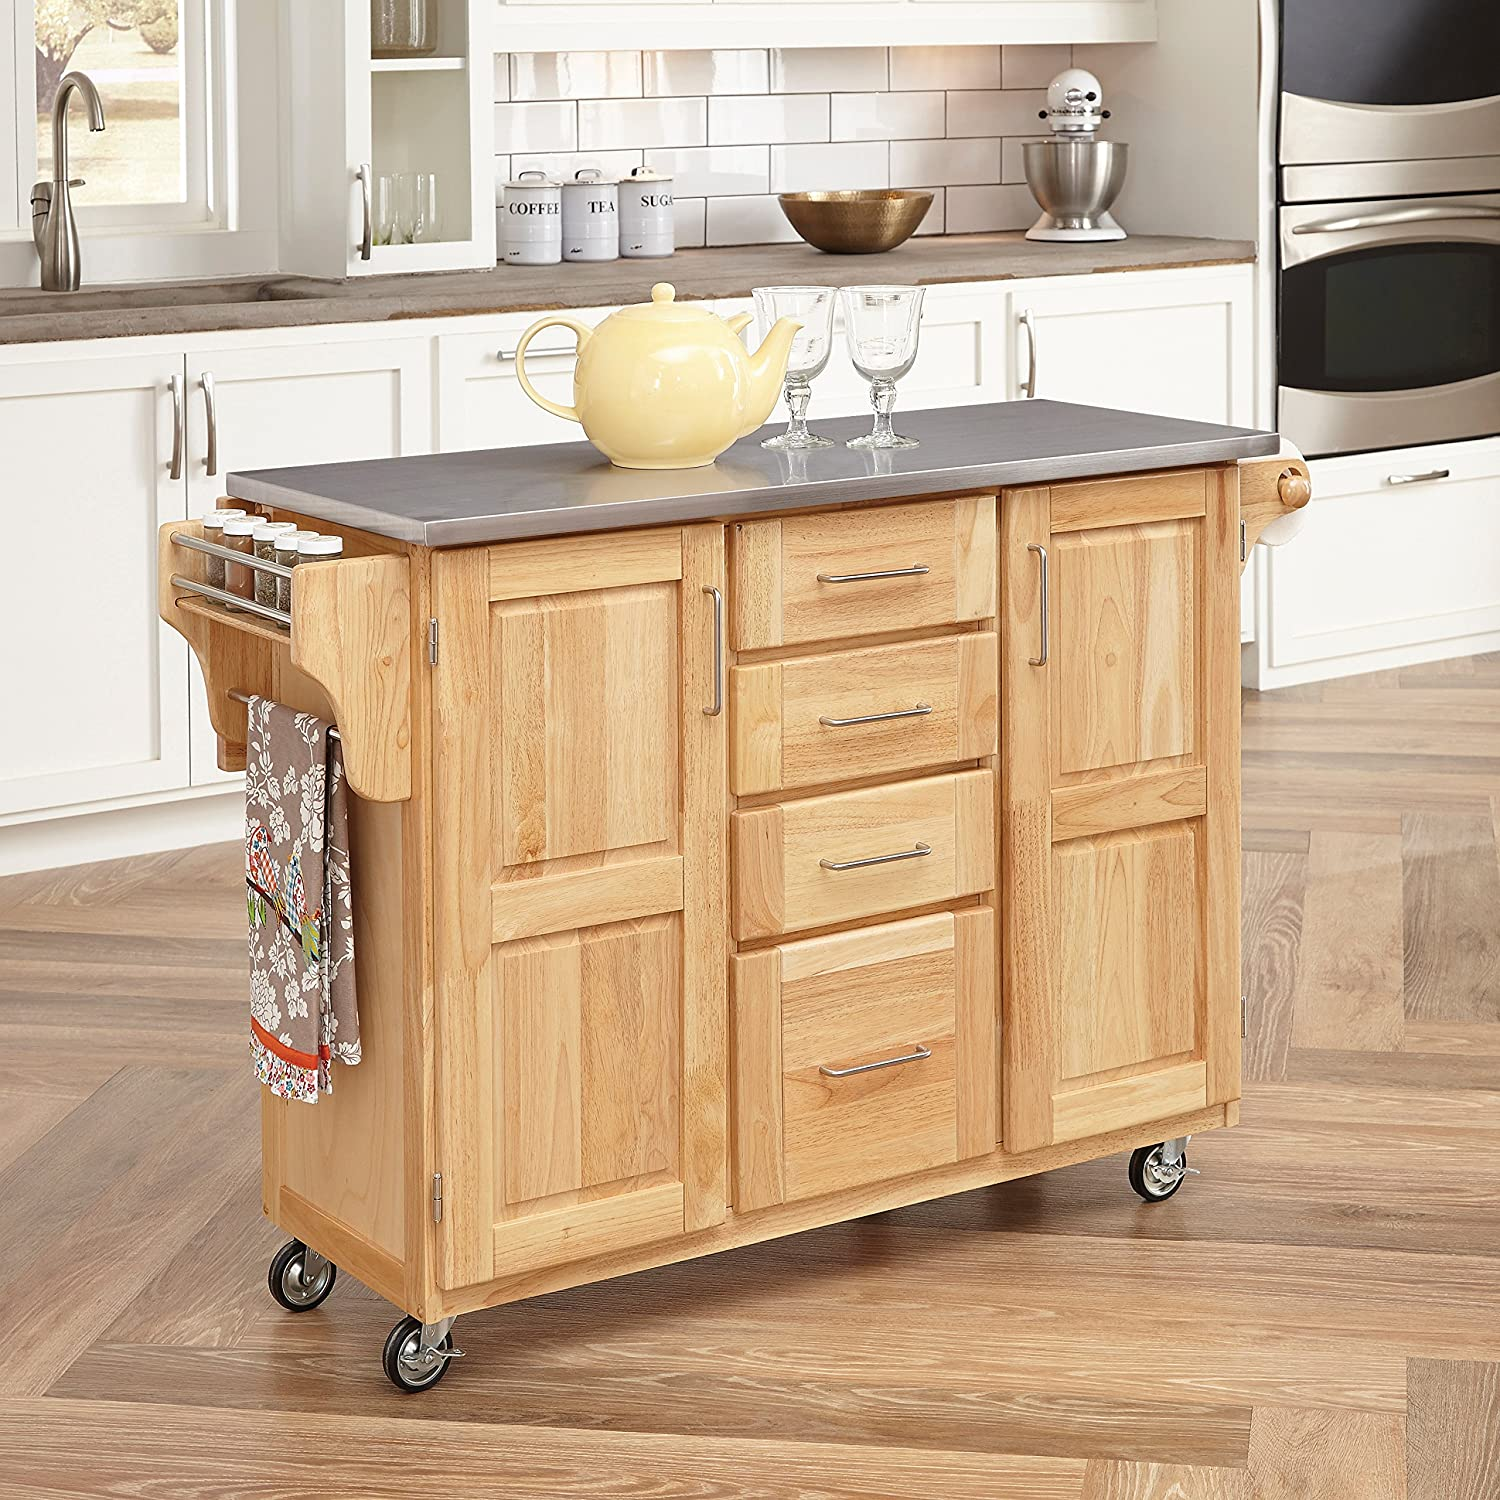 Amazon Com Kitchen Cart With Breakfast Bar Stainless Steel Top By Home Styles Furniture Decor